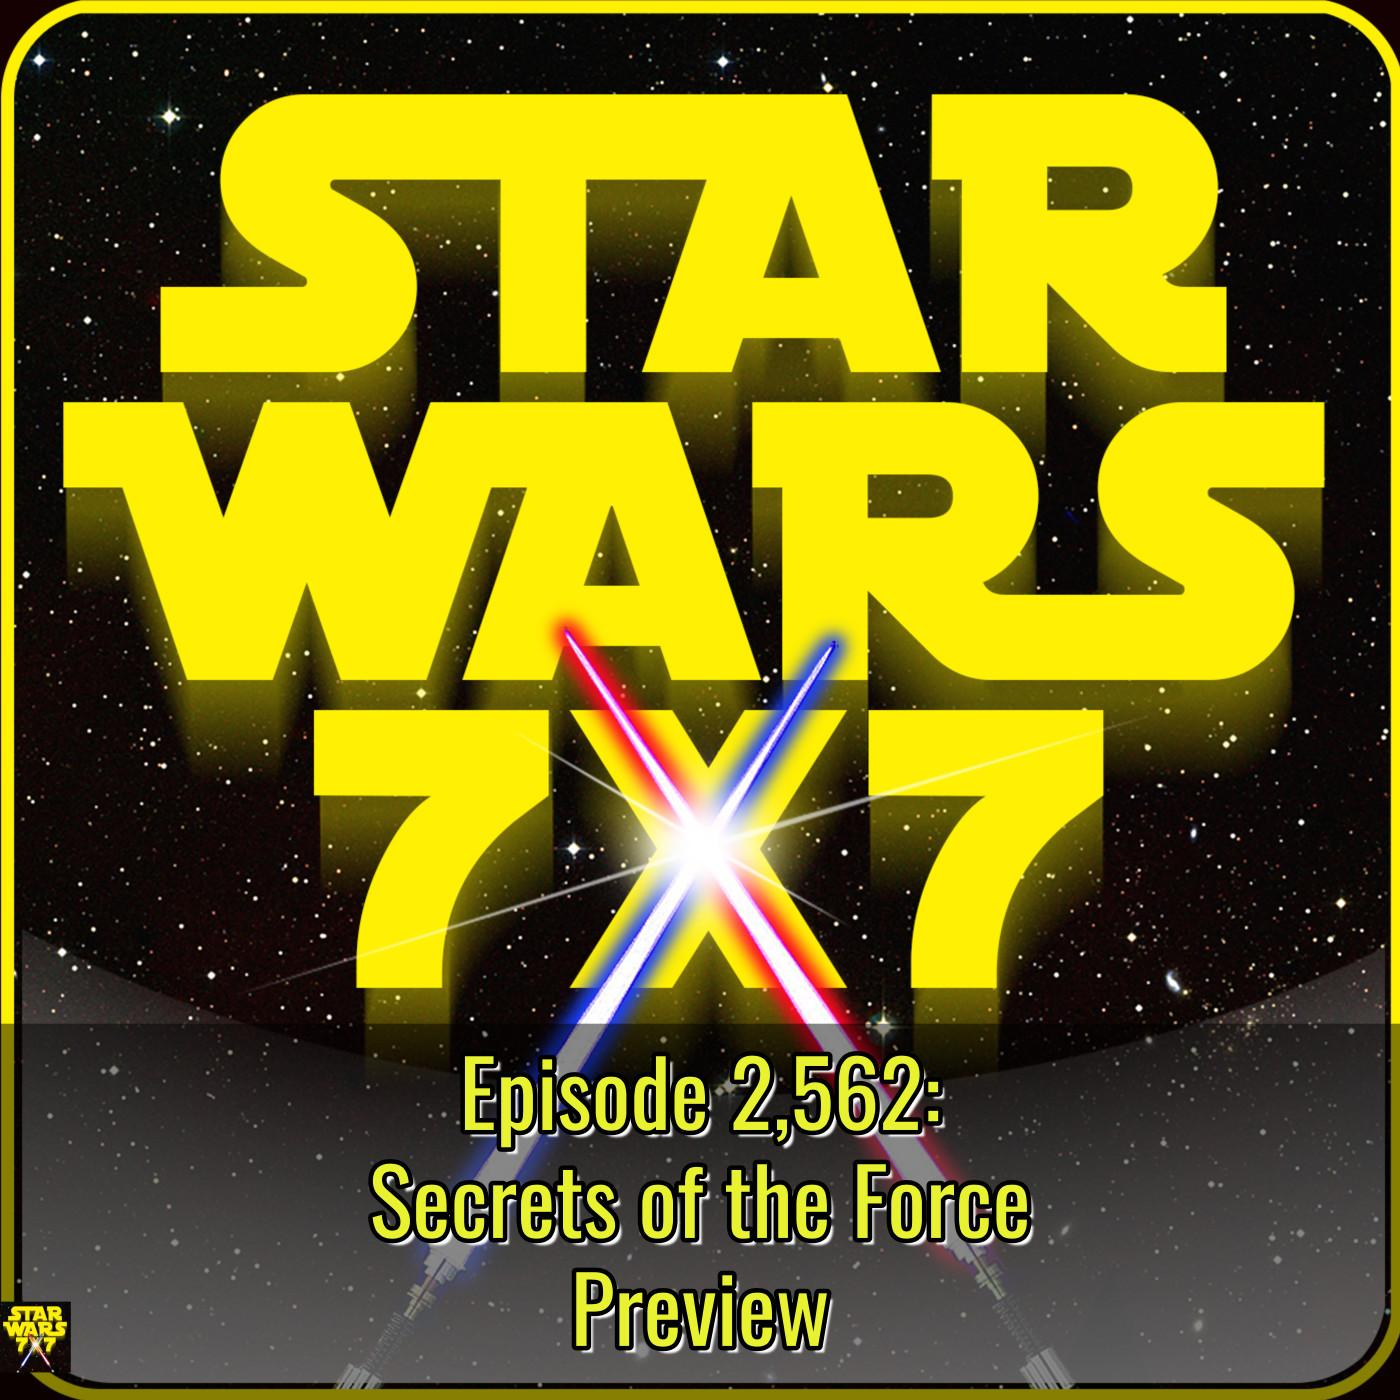 2,562. Secrets of the Force Preview